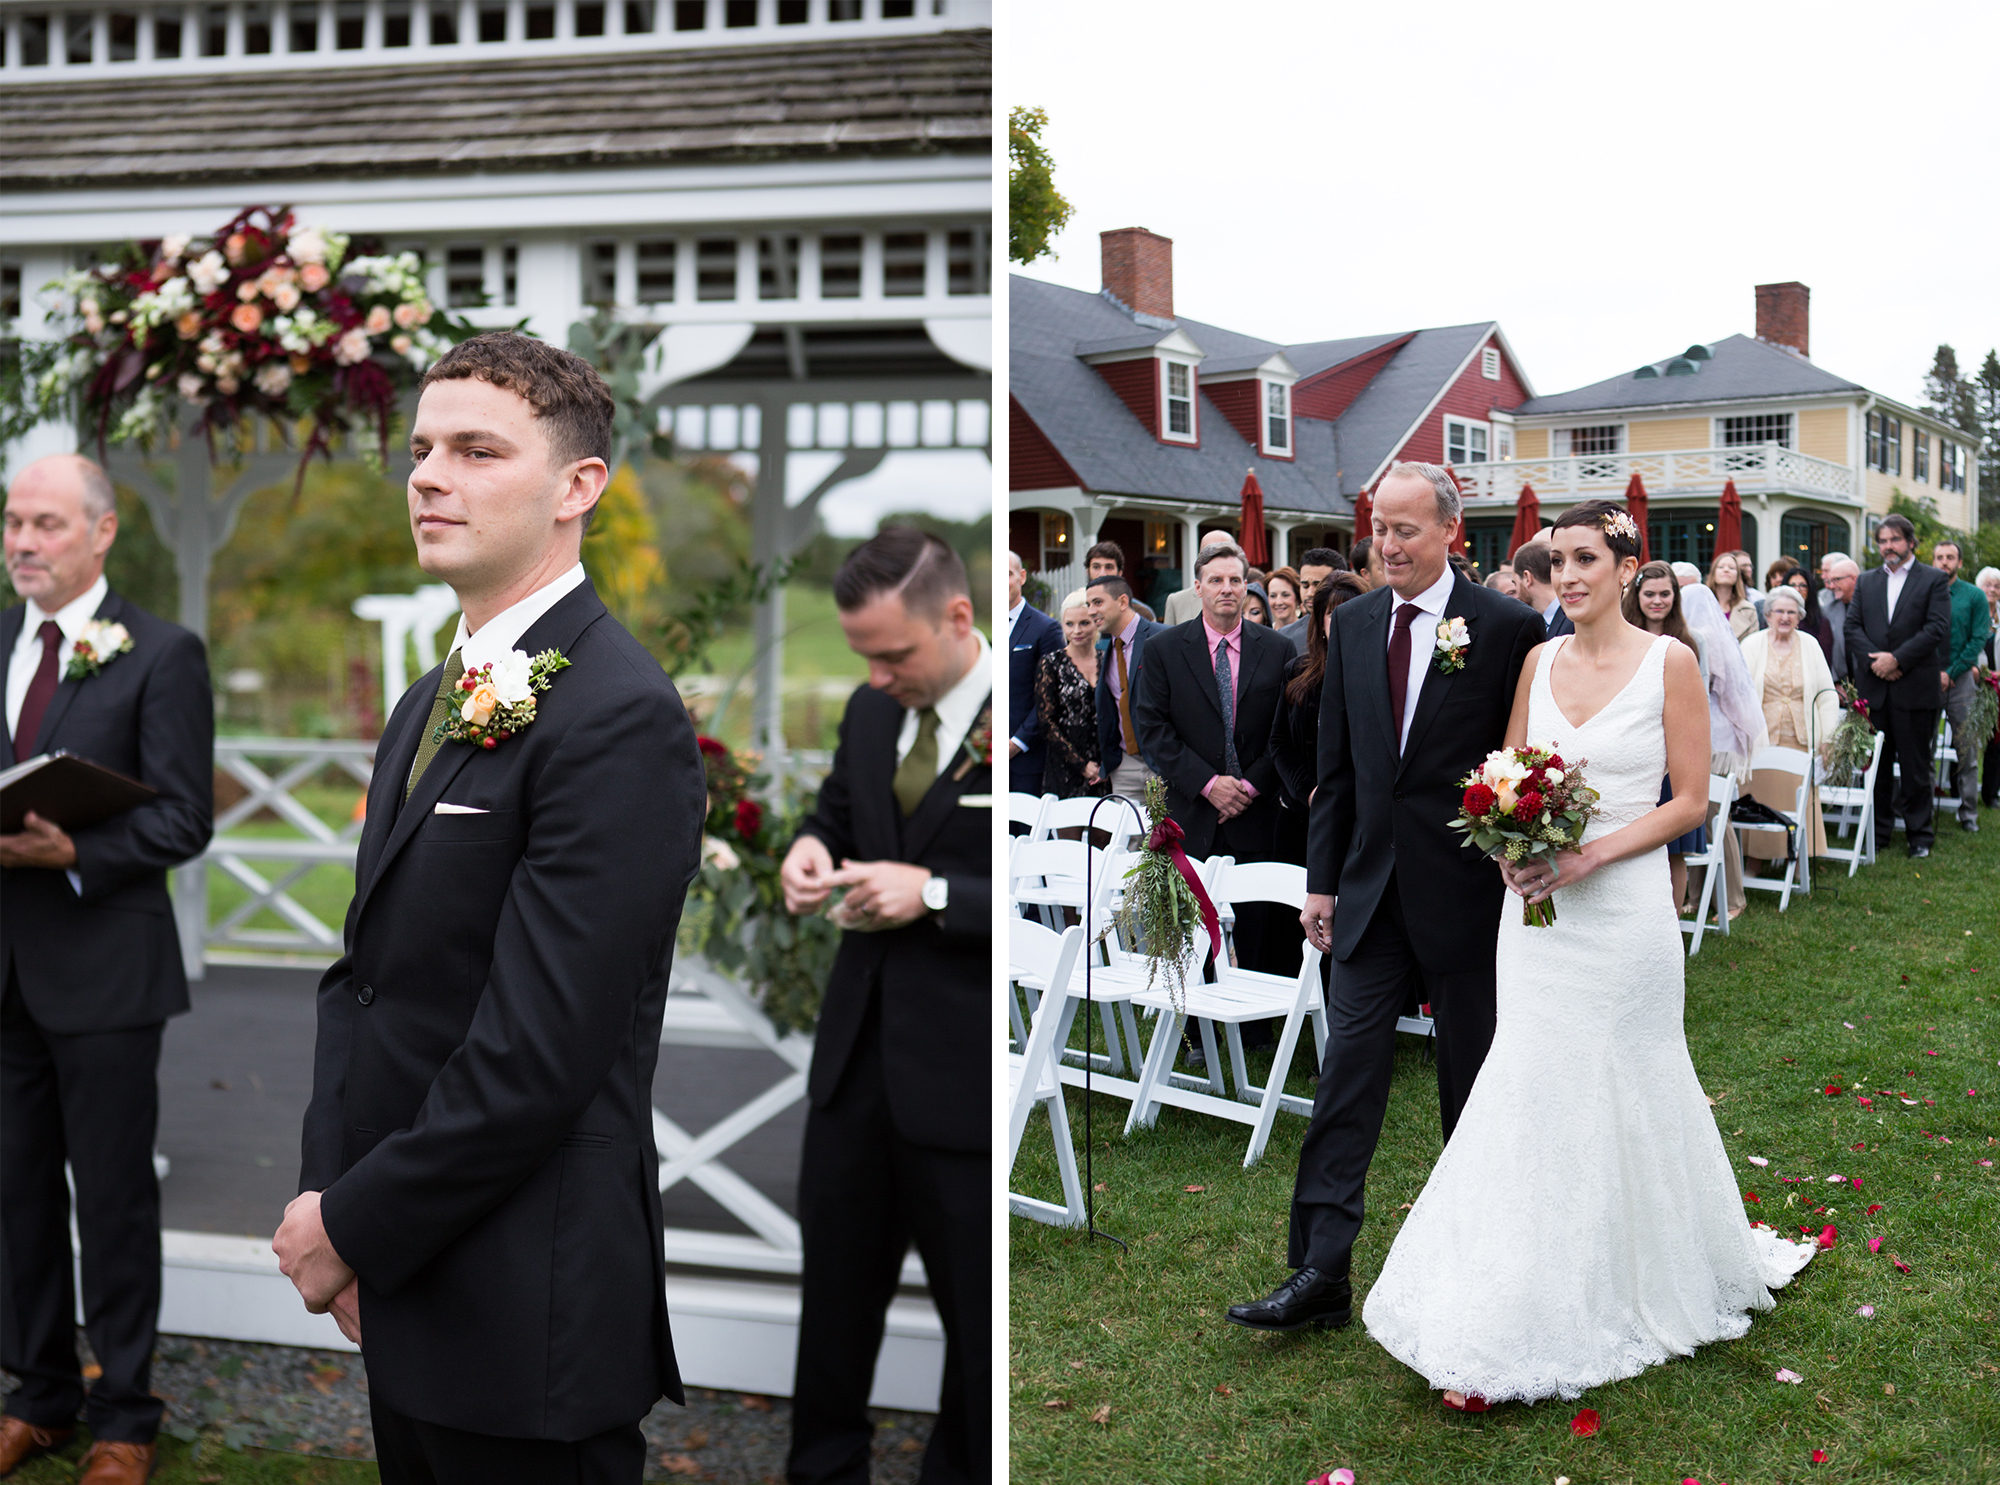 Bride Groom Ceremony Outdoor Wedding Massachusetts Zsuzsi Pal Photography Destination